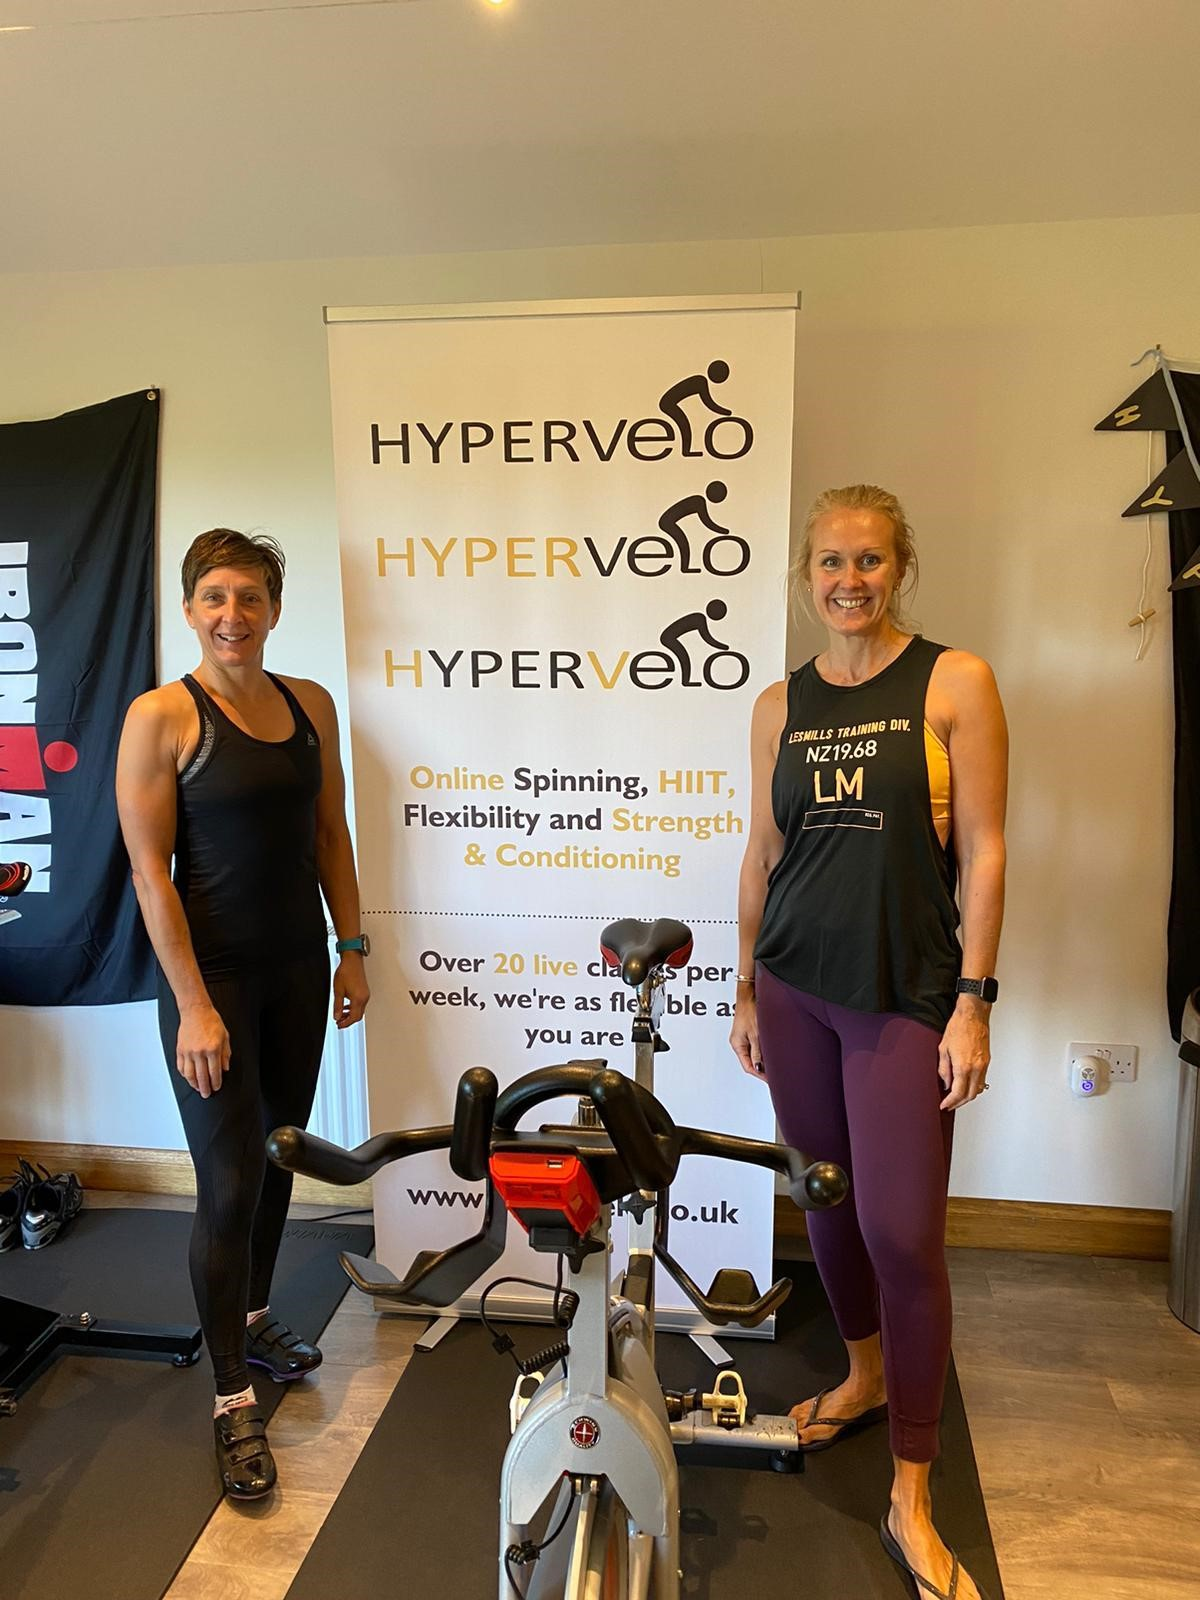 Hypervelo online fitness studio is keeping Worcestershire fit through Covid